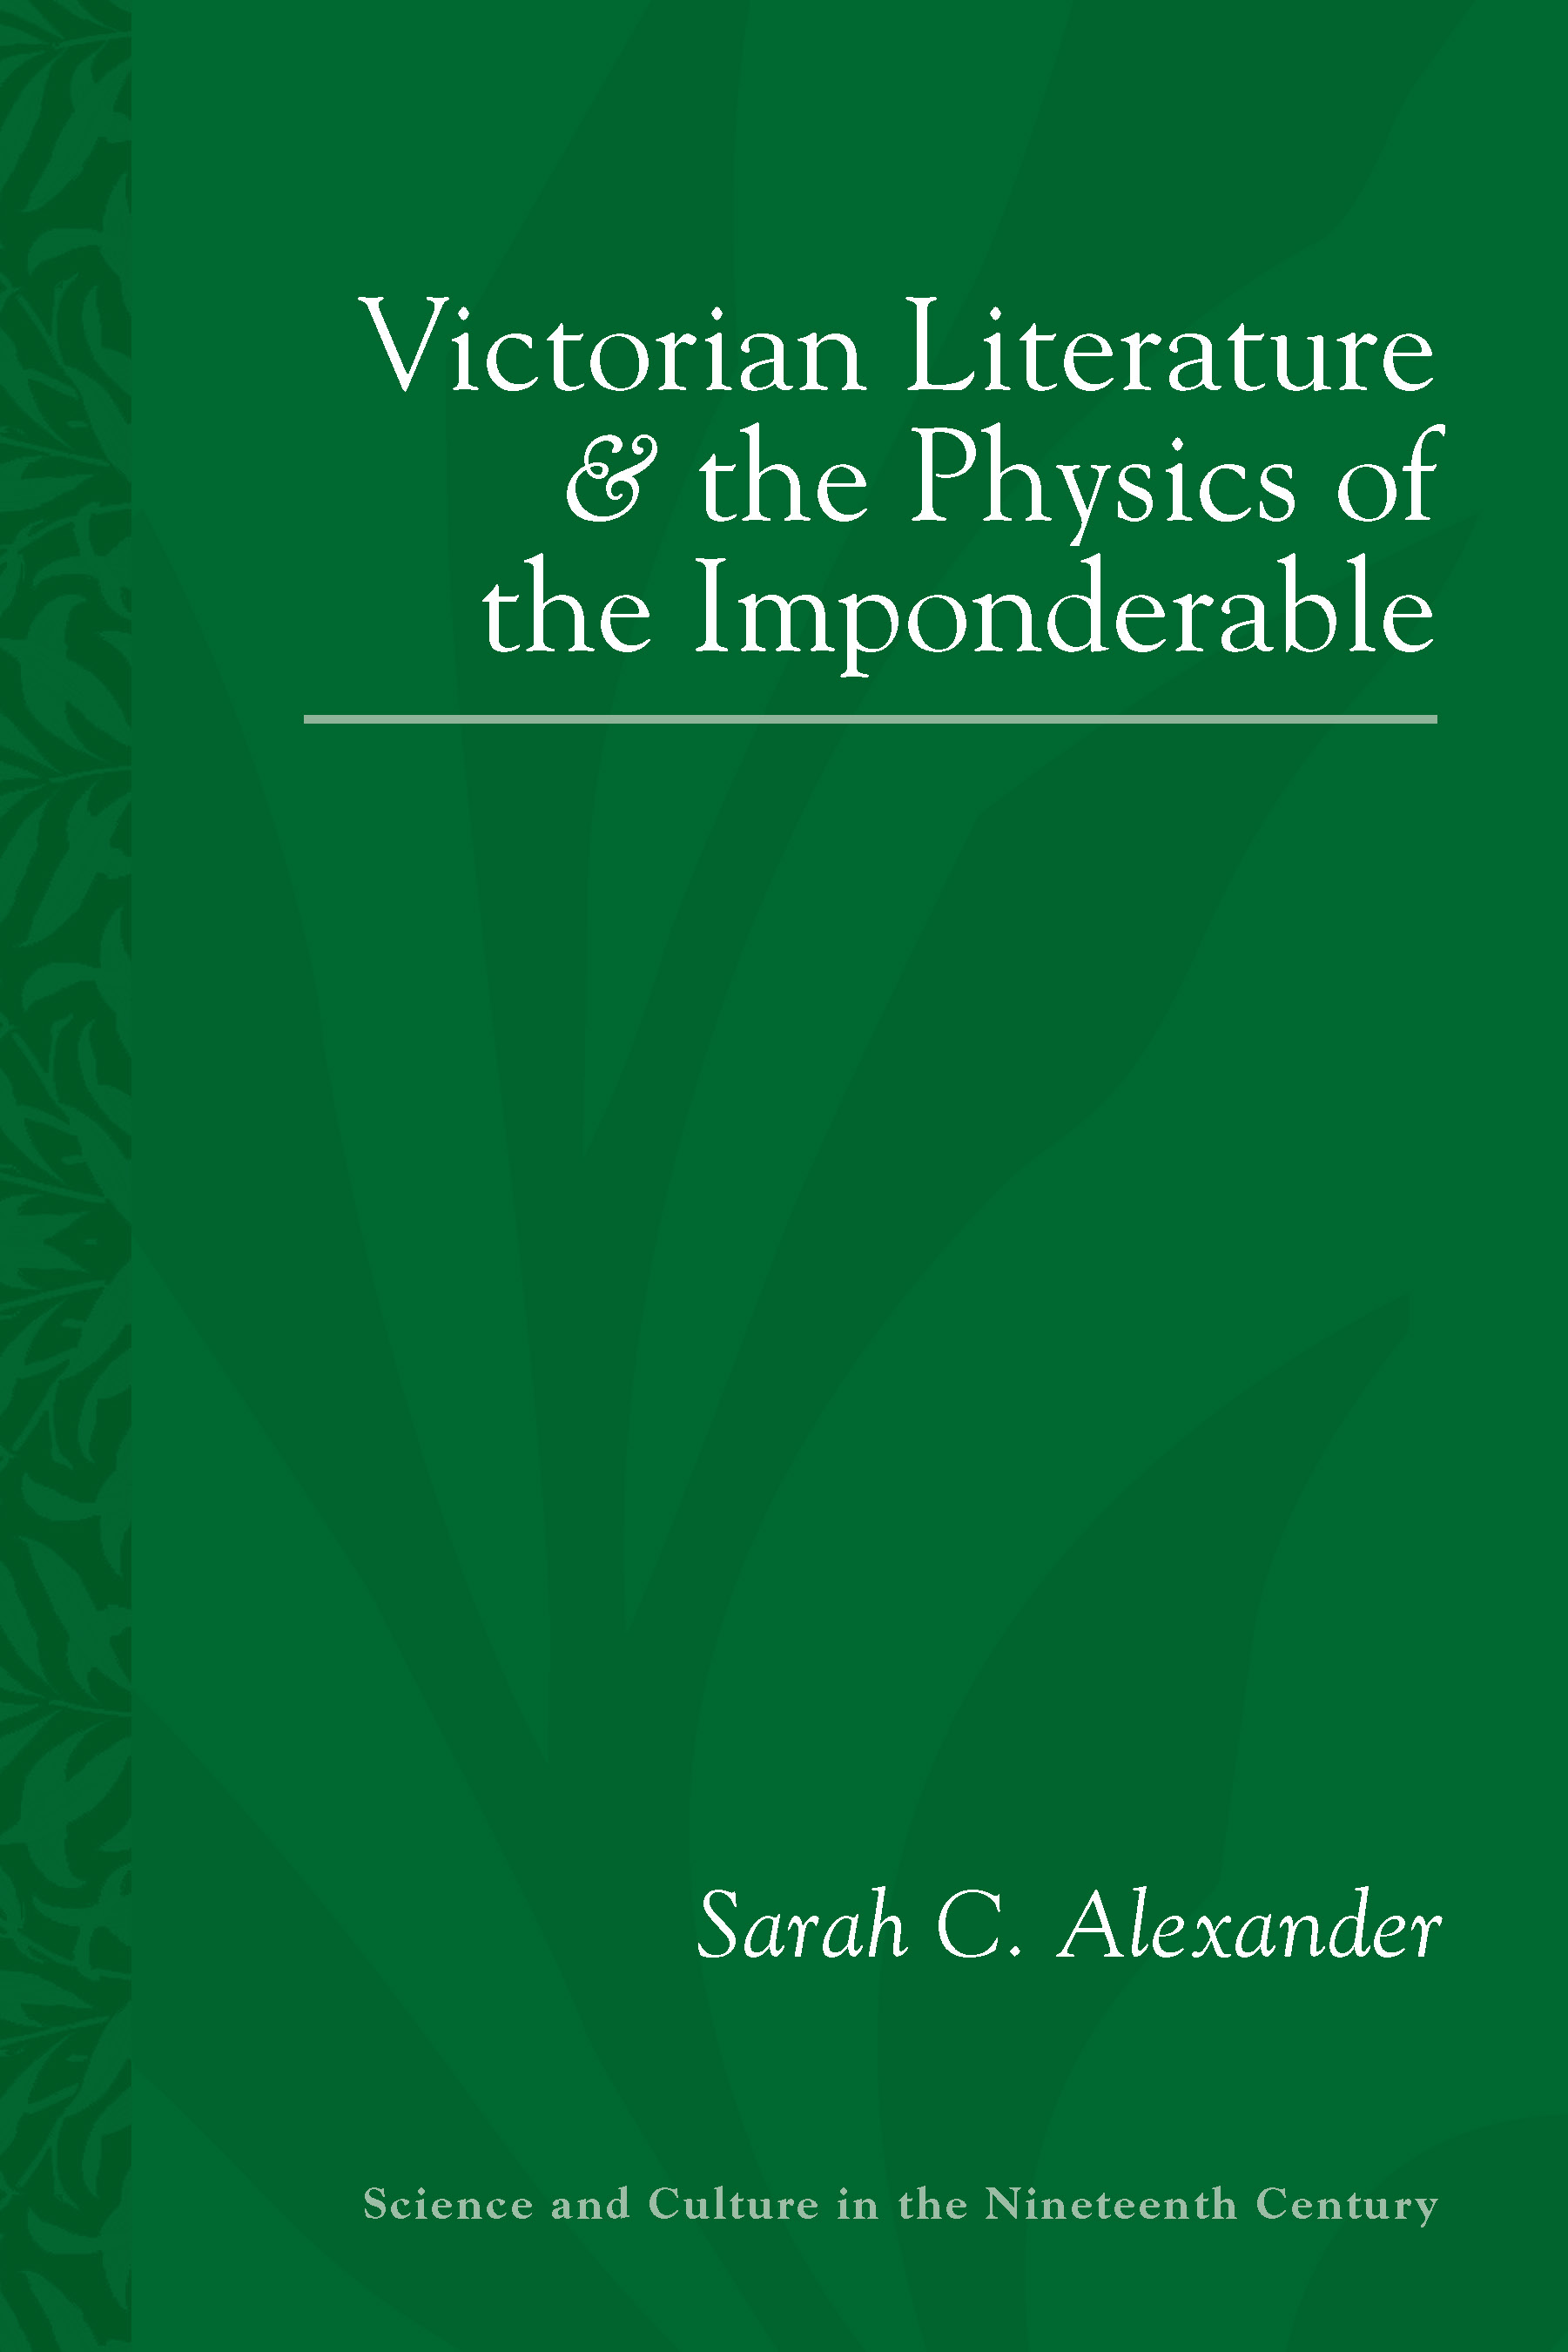 cover of Victorian Literature and the Physics of the Imponderable by Sarah Alexander